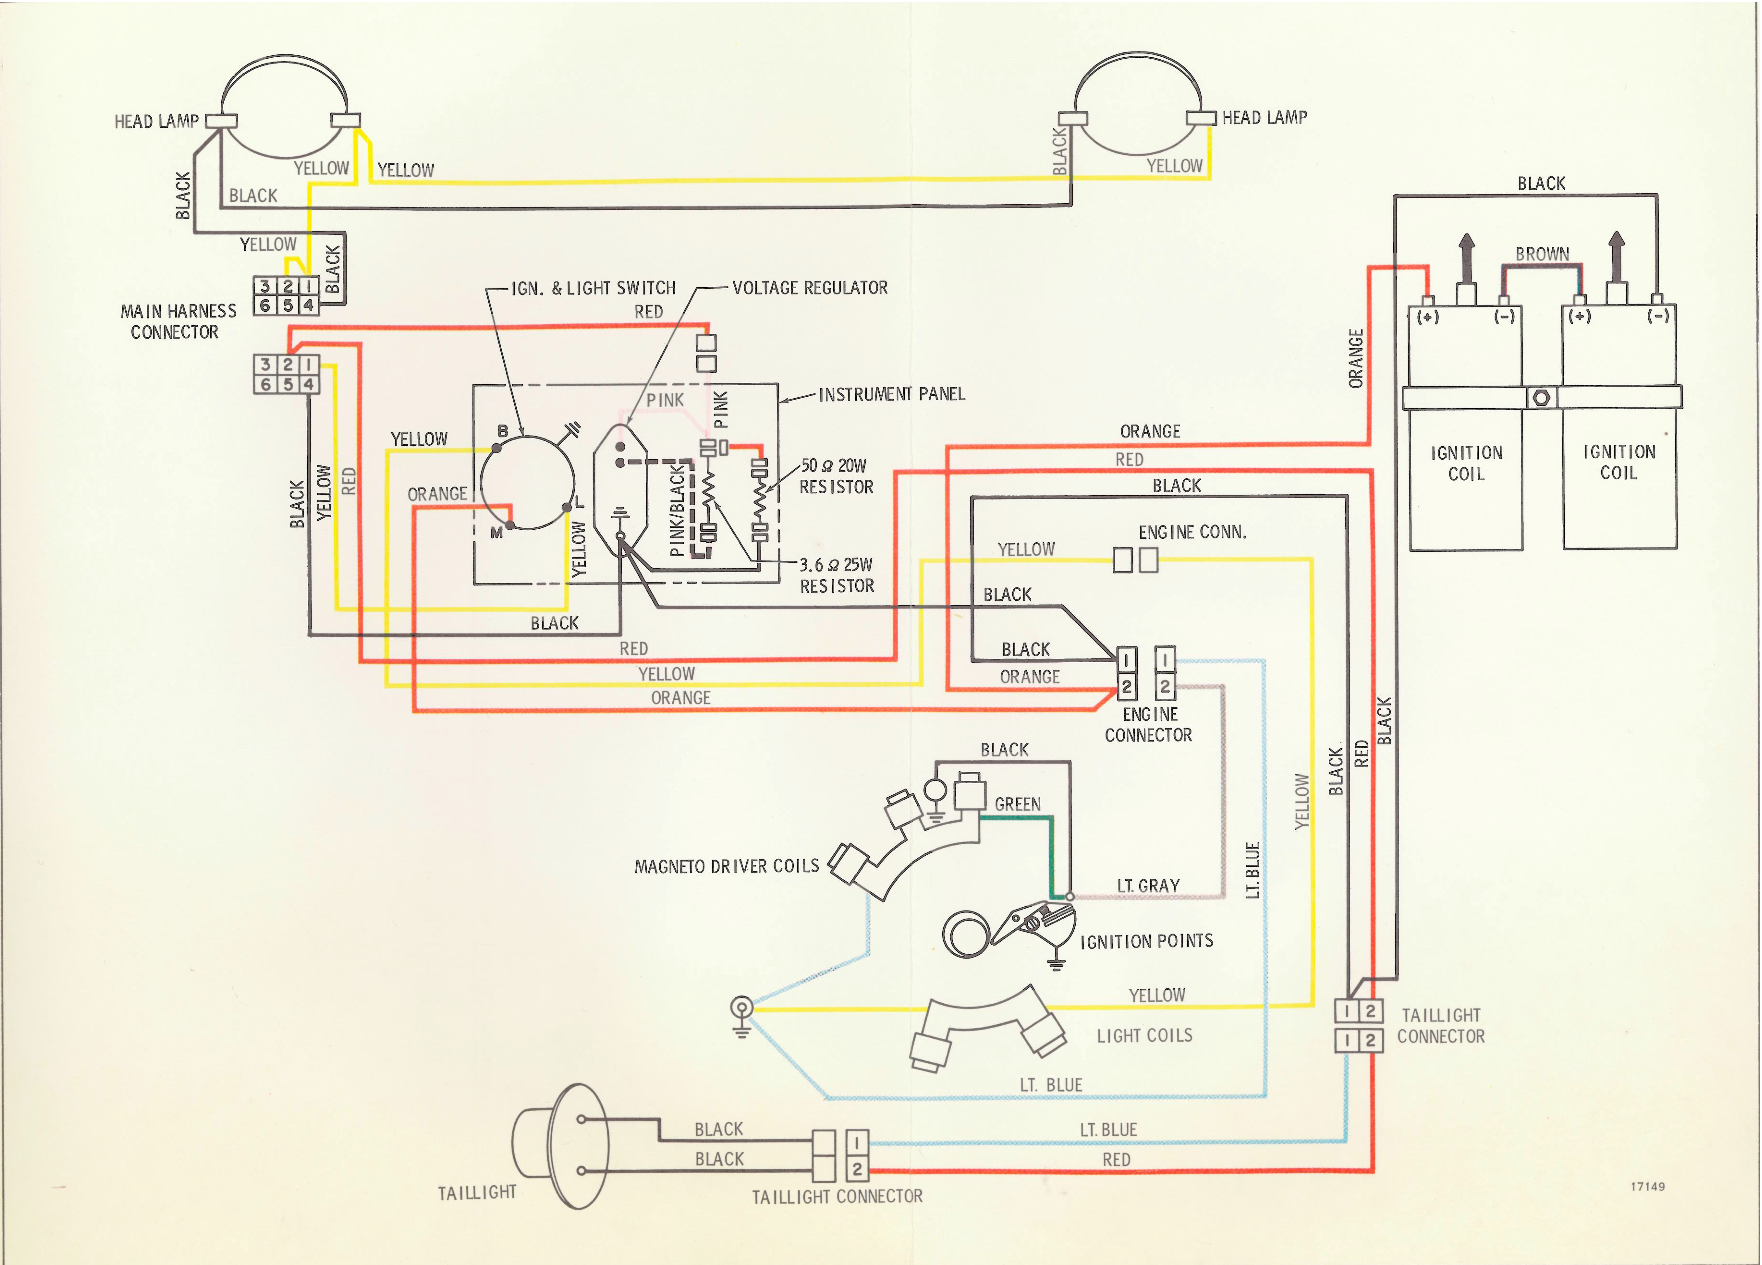 1971_Bobcat evinrude bobcat 743 starter wiring diagram at panicattacktreatment.co